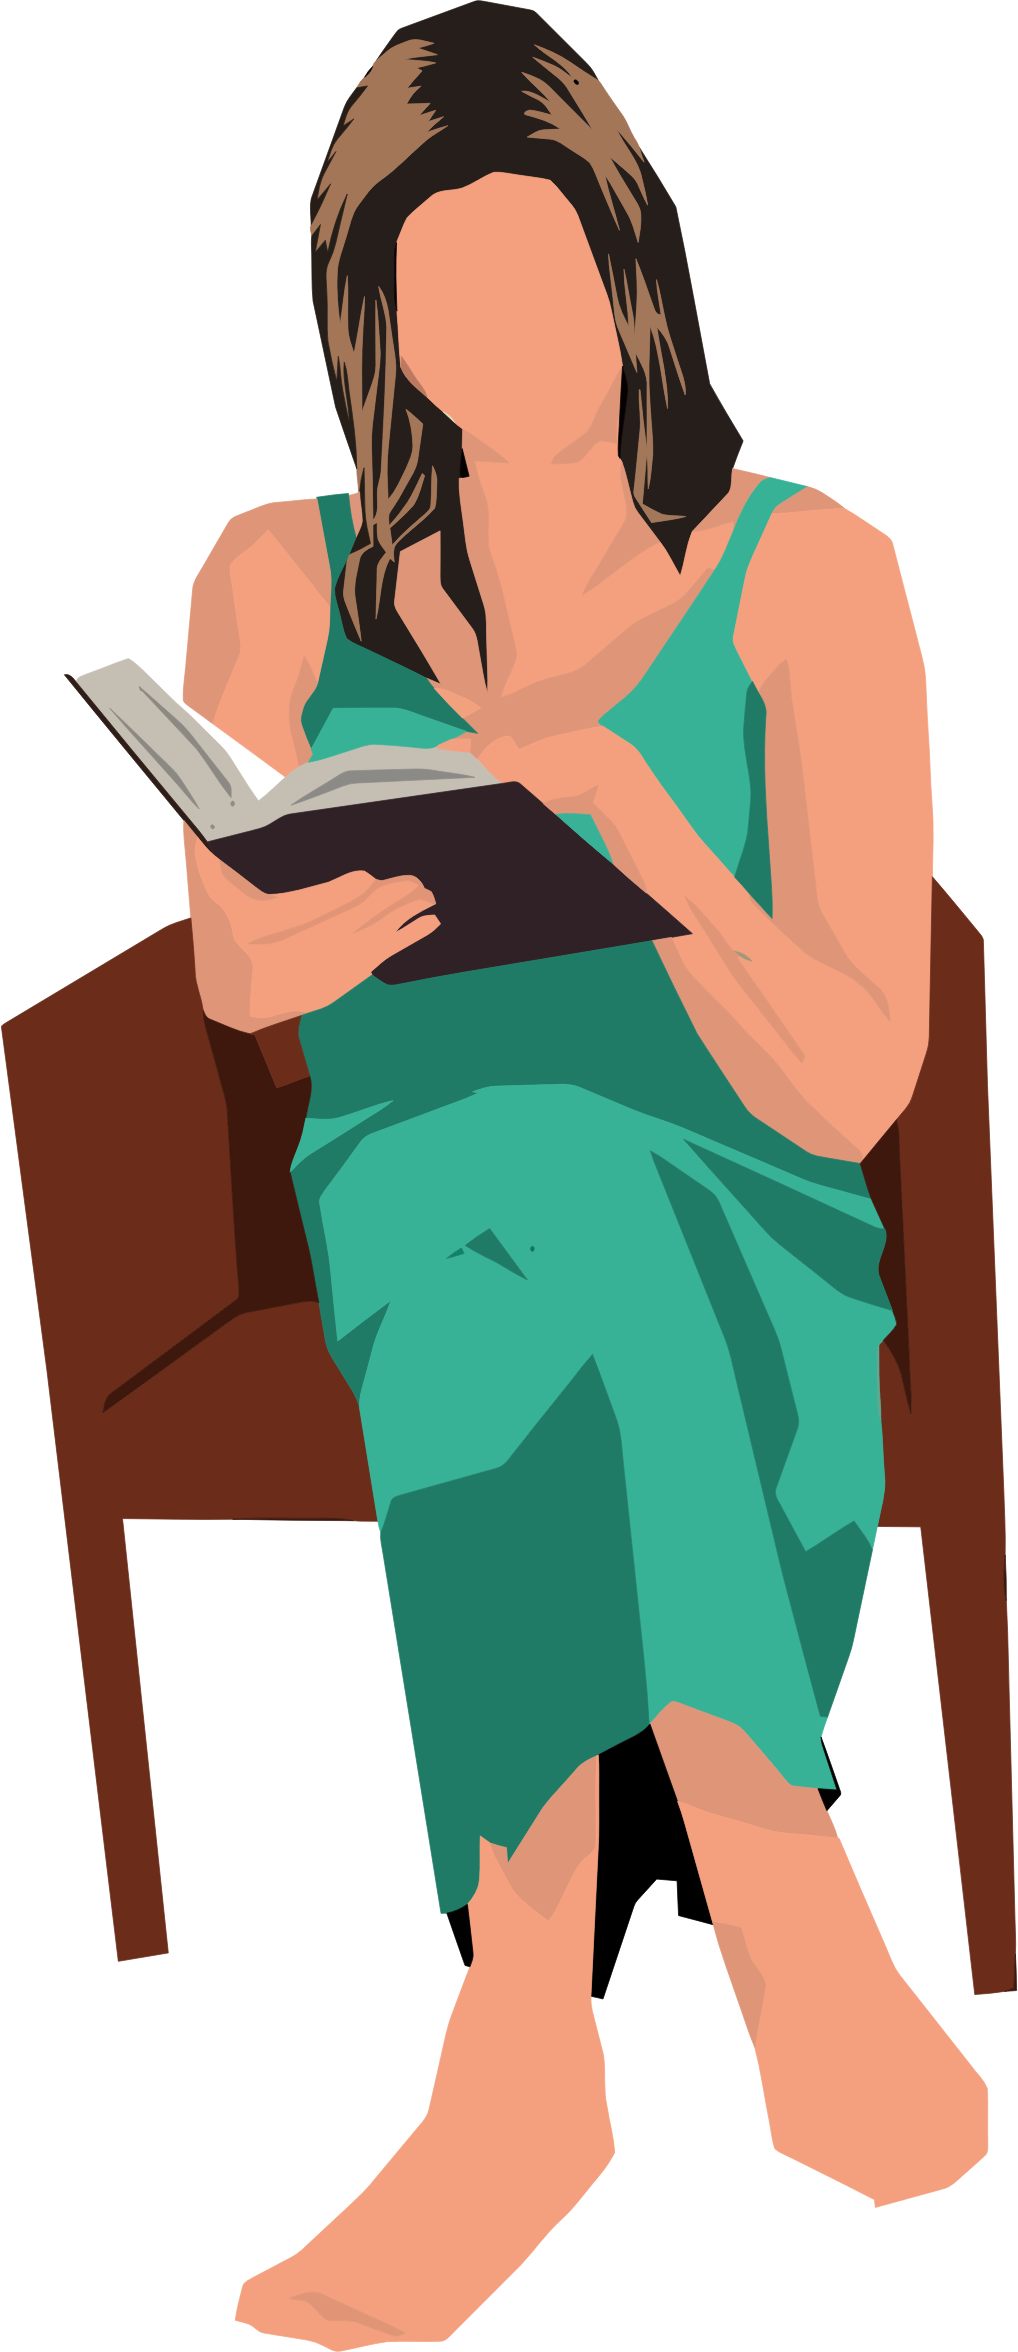 Sitting in chair big. Clipart reading woman